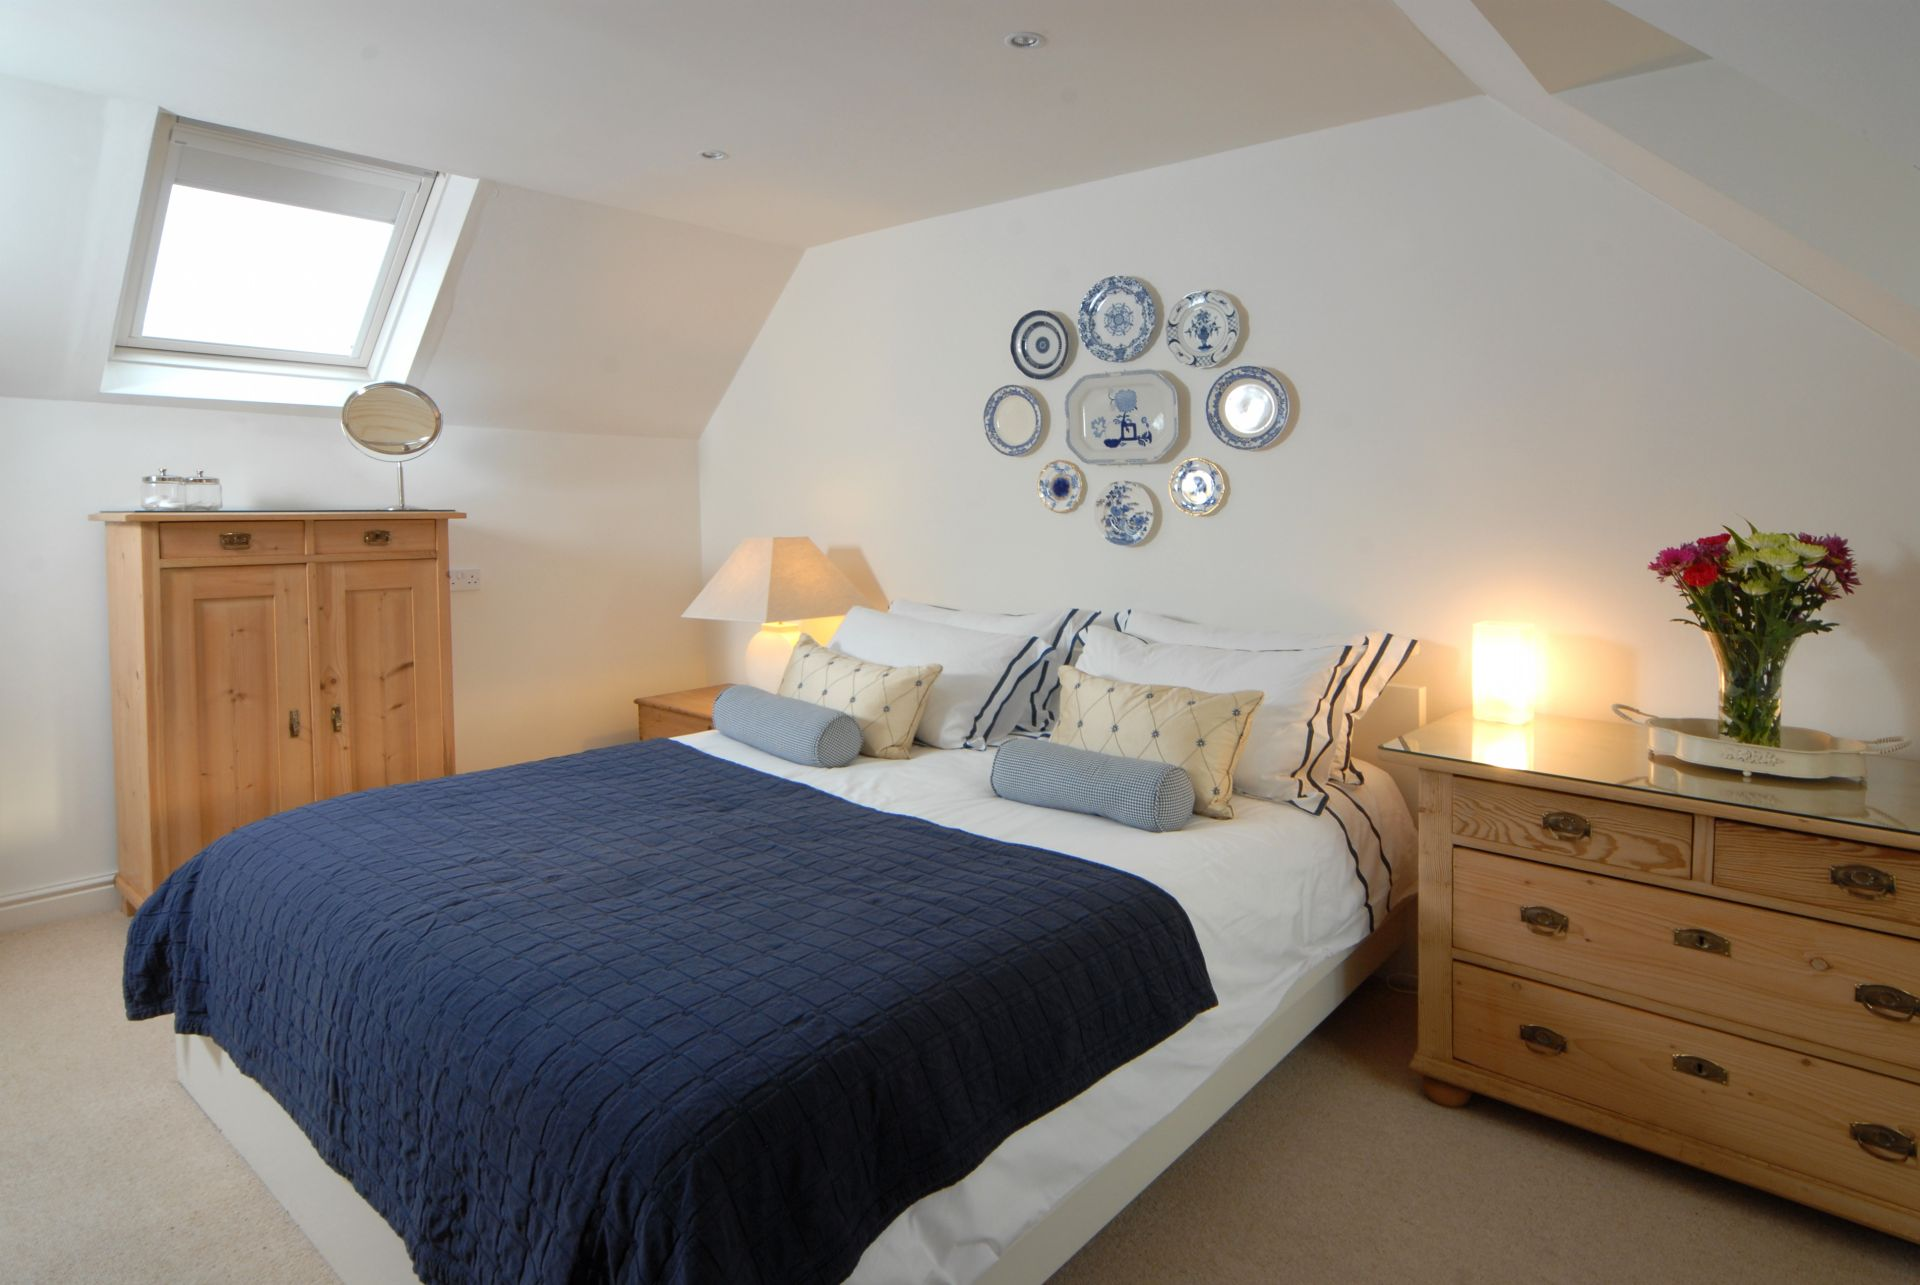 A view of the double Bedroom